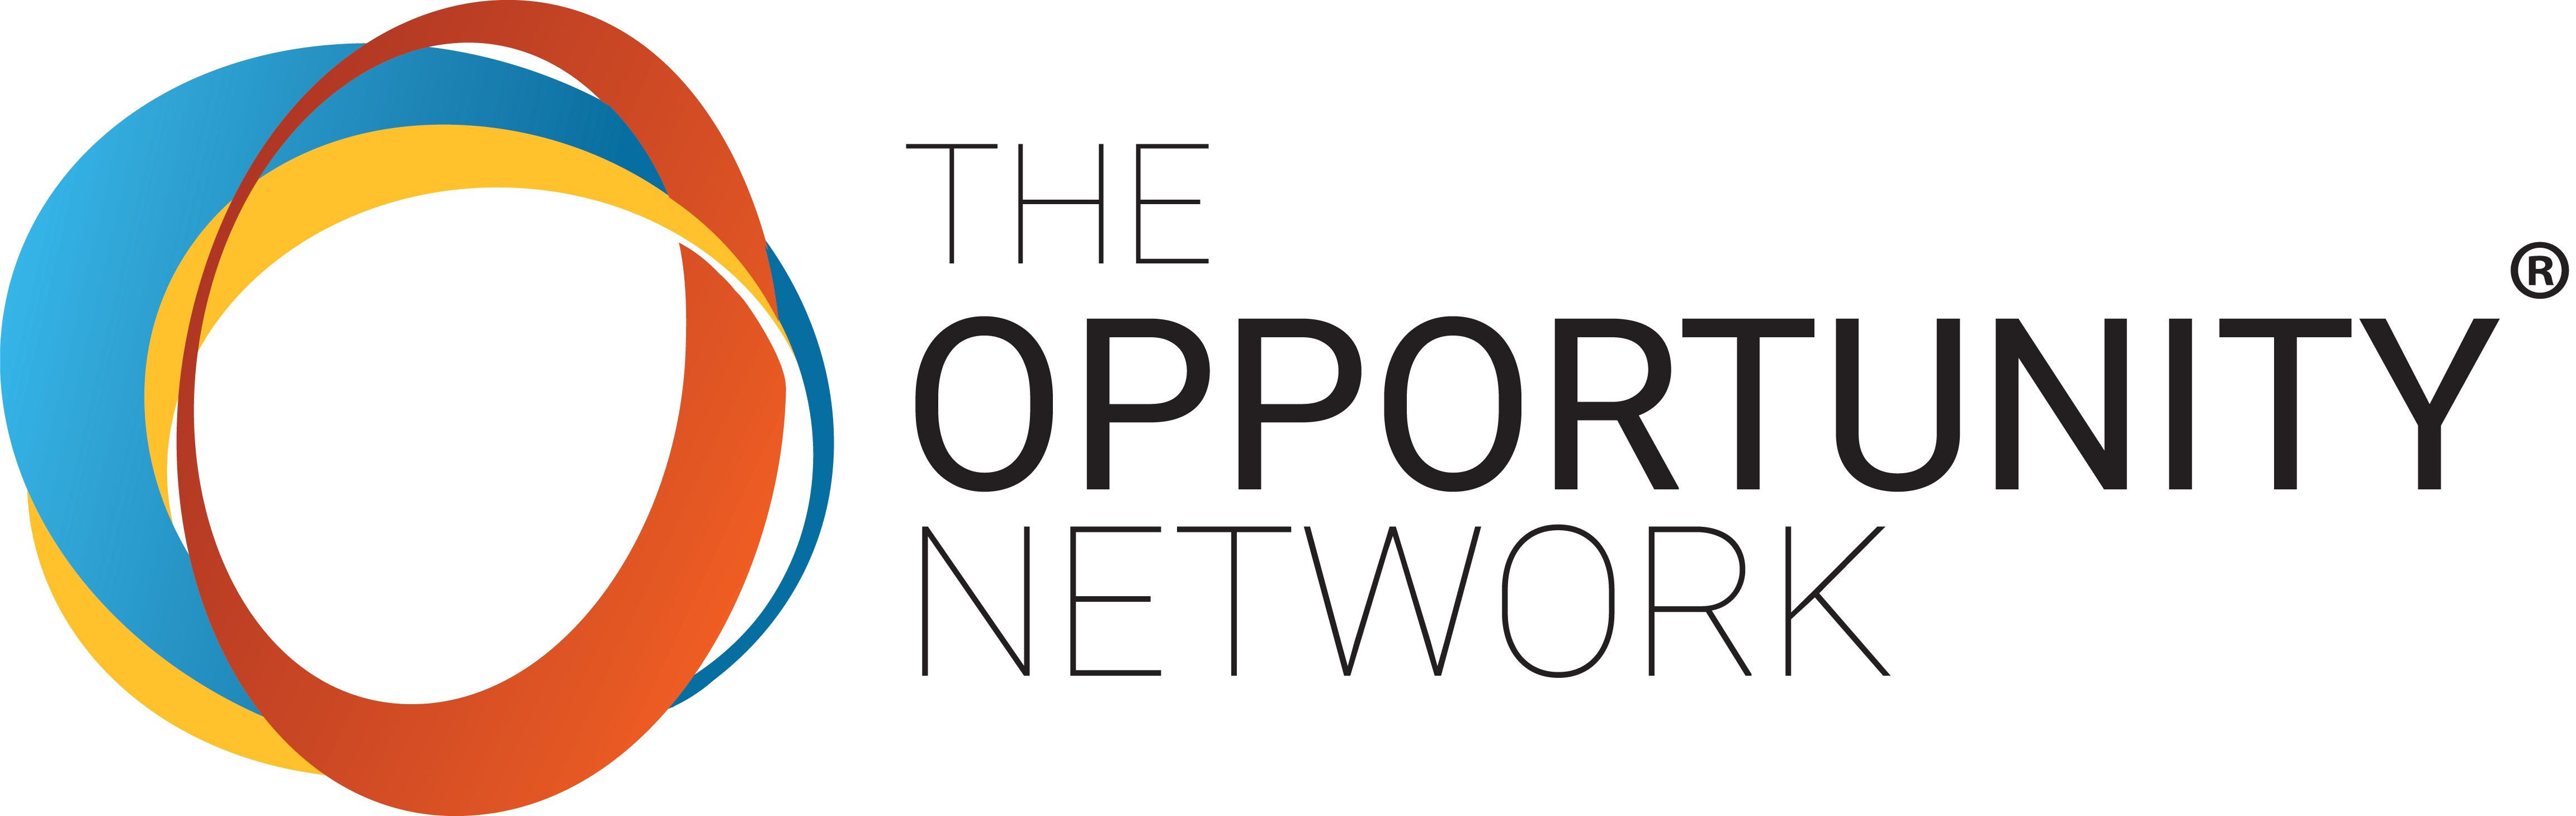 The Opportunity Network, Inc.